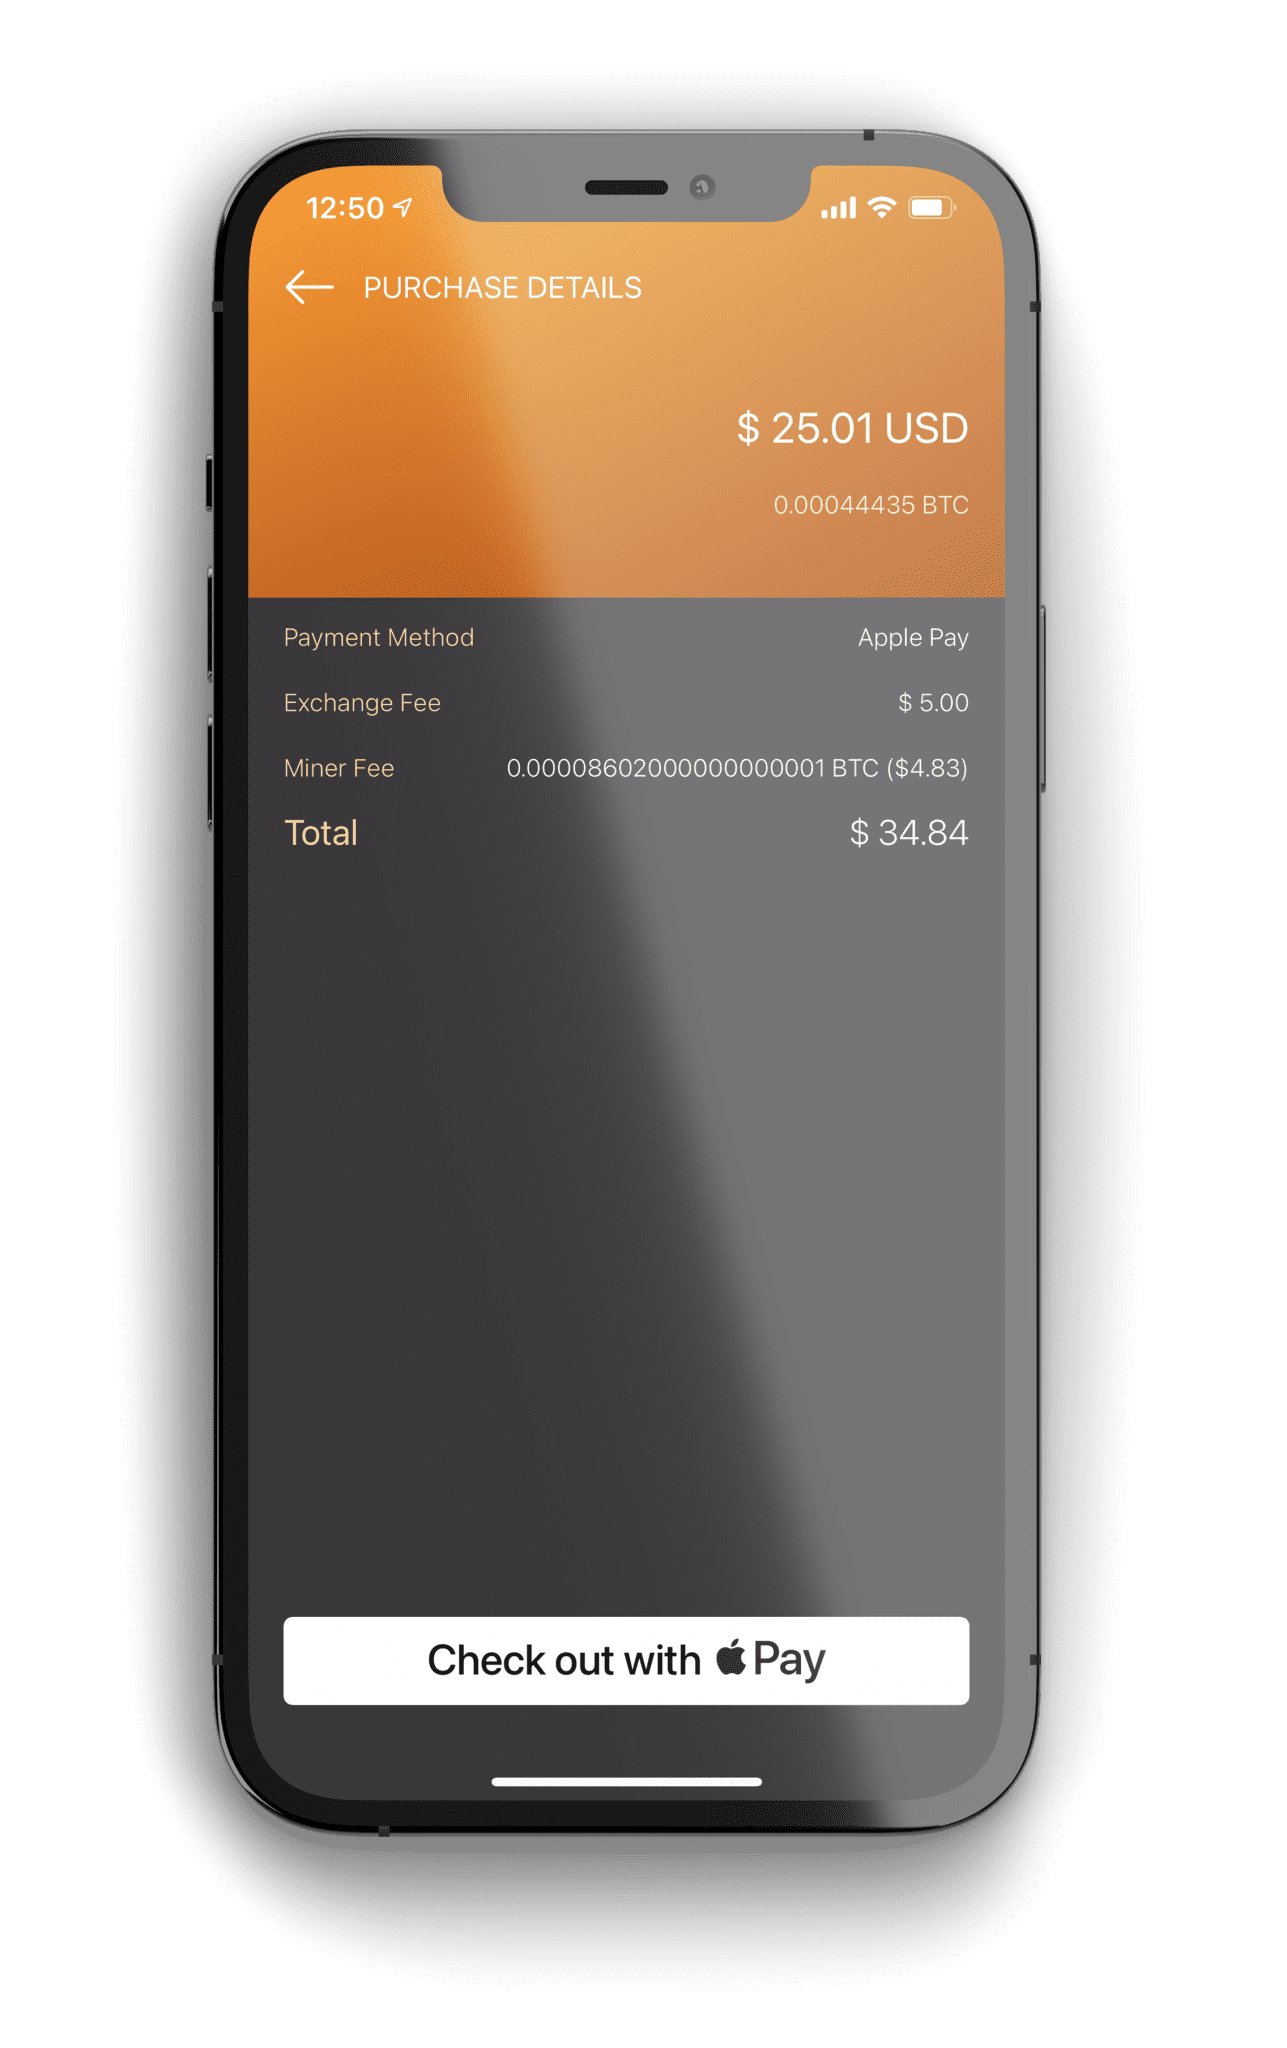 Monarch Wallet BTC Purchase with Apple Pay Screen